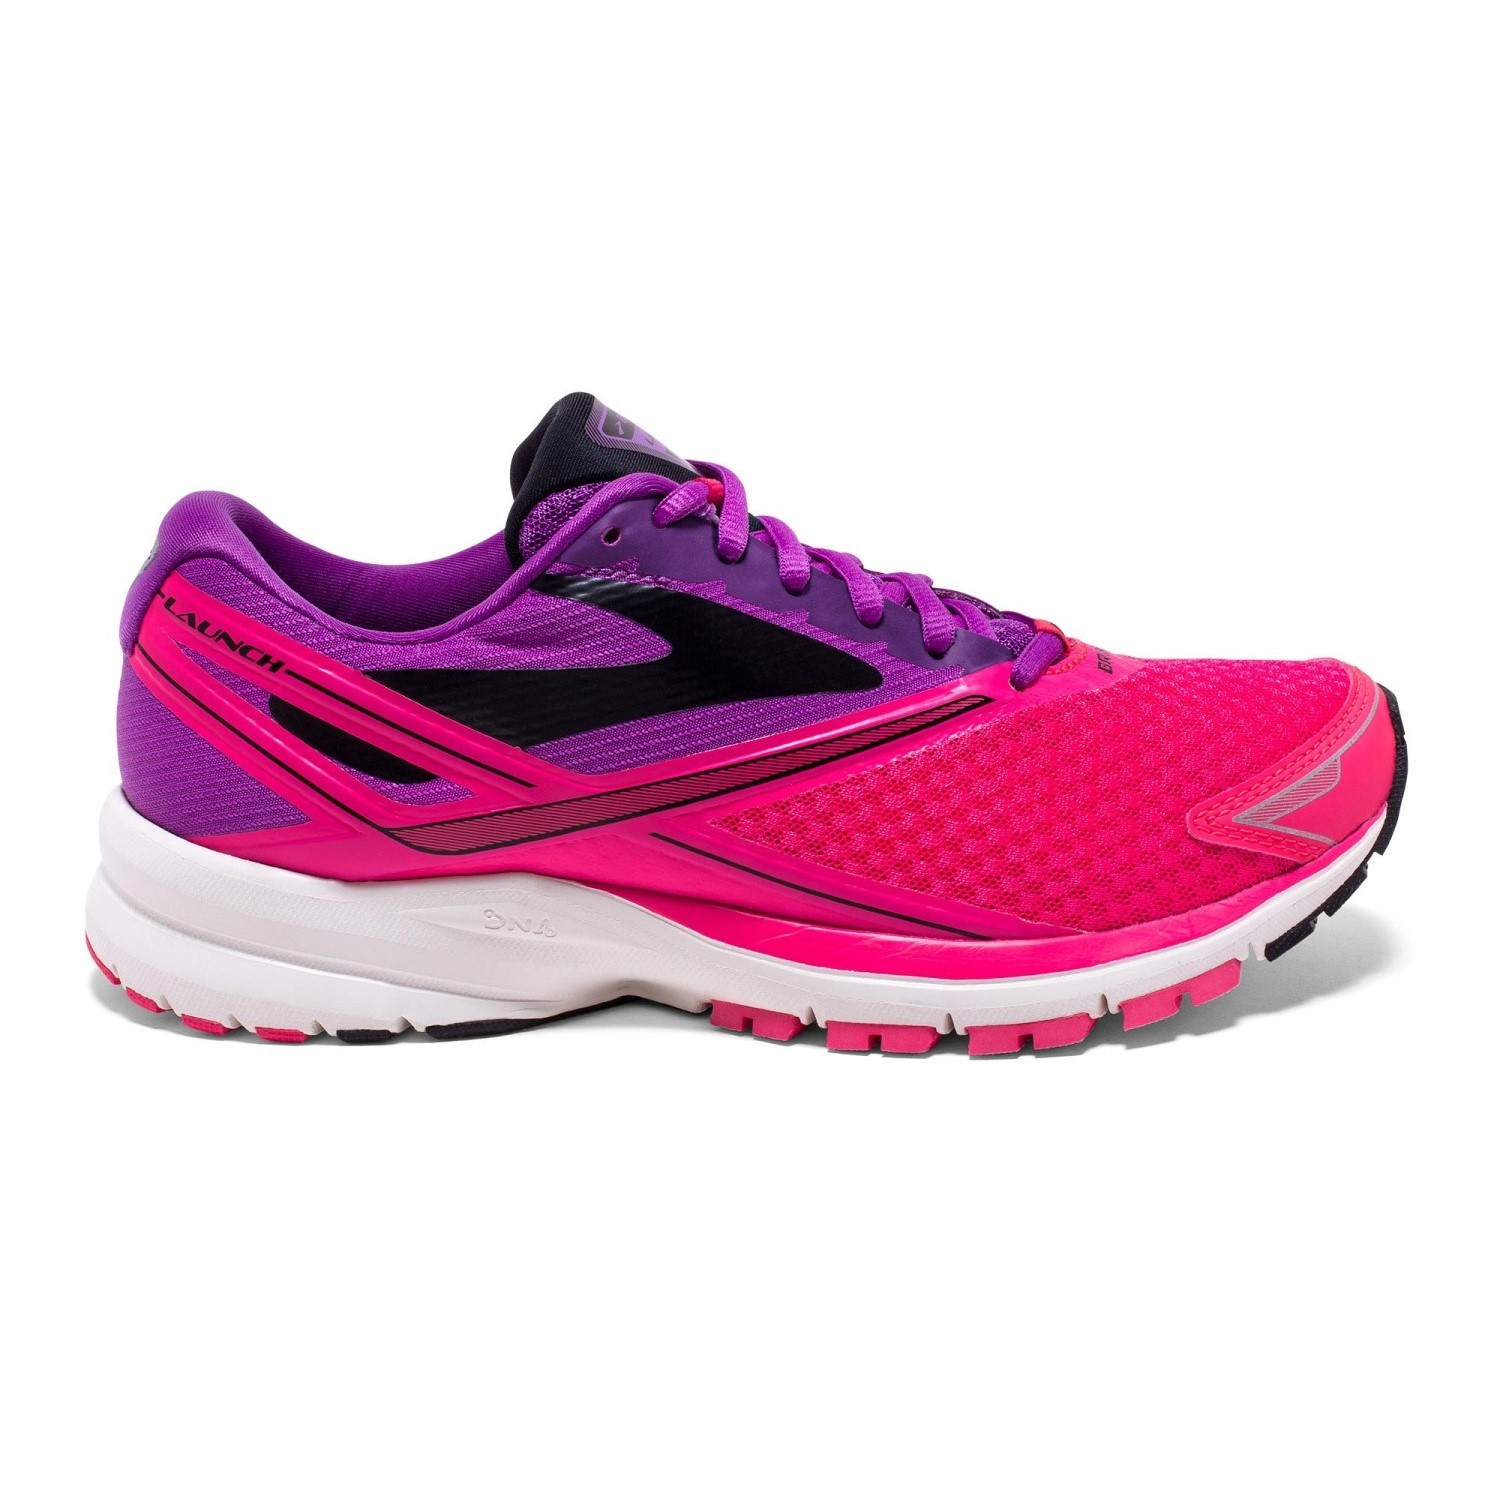 Brooks Running Shoes For Sale Australia